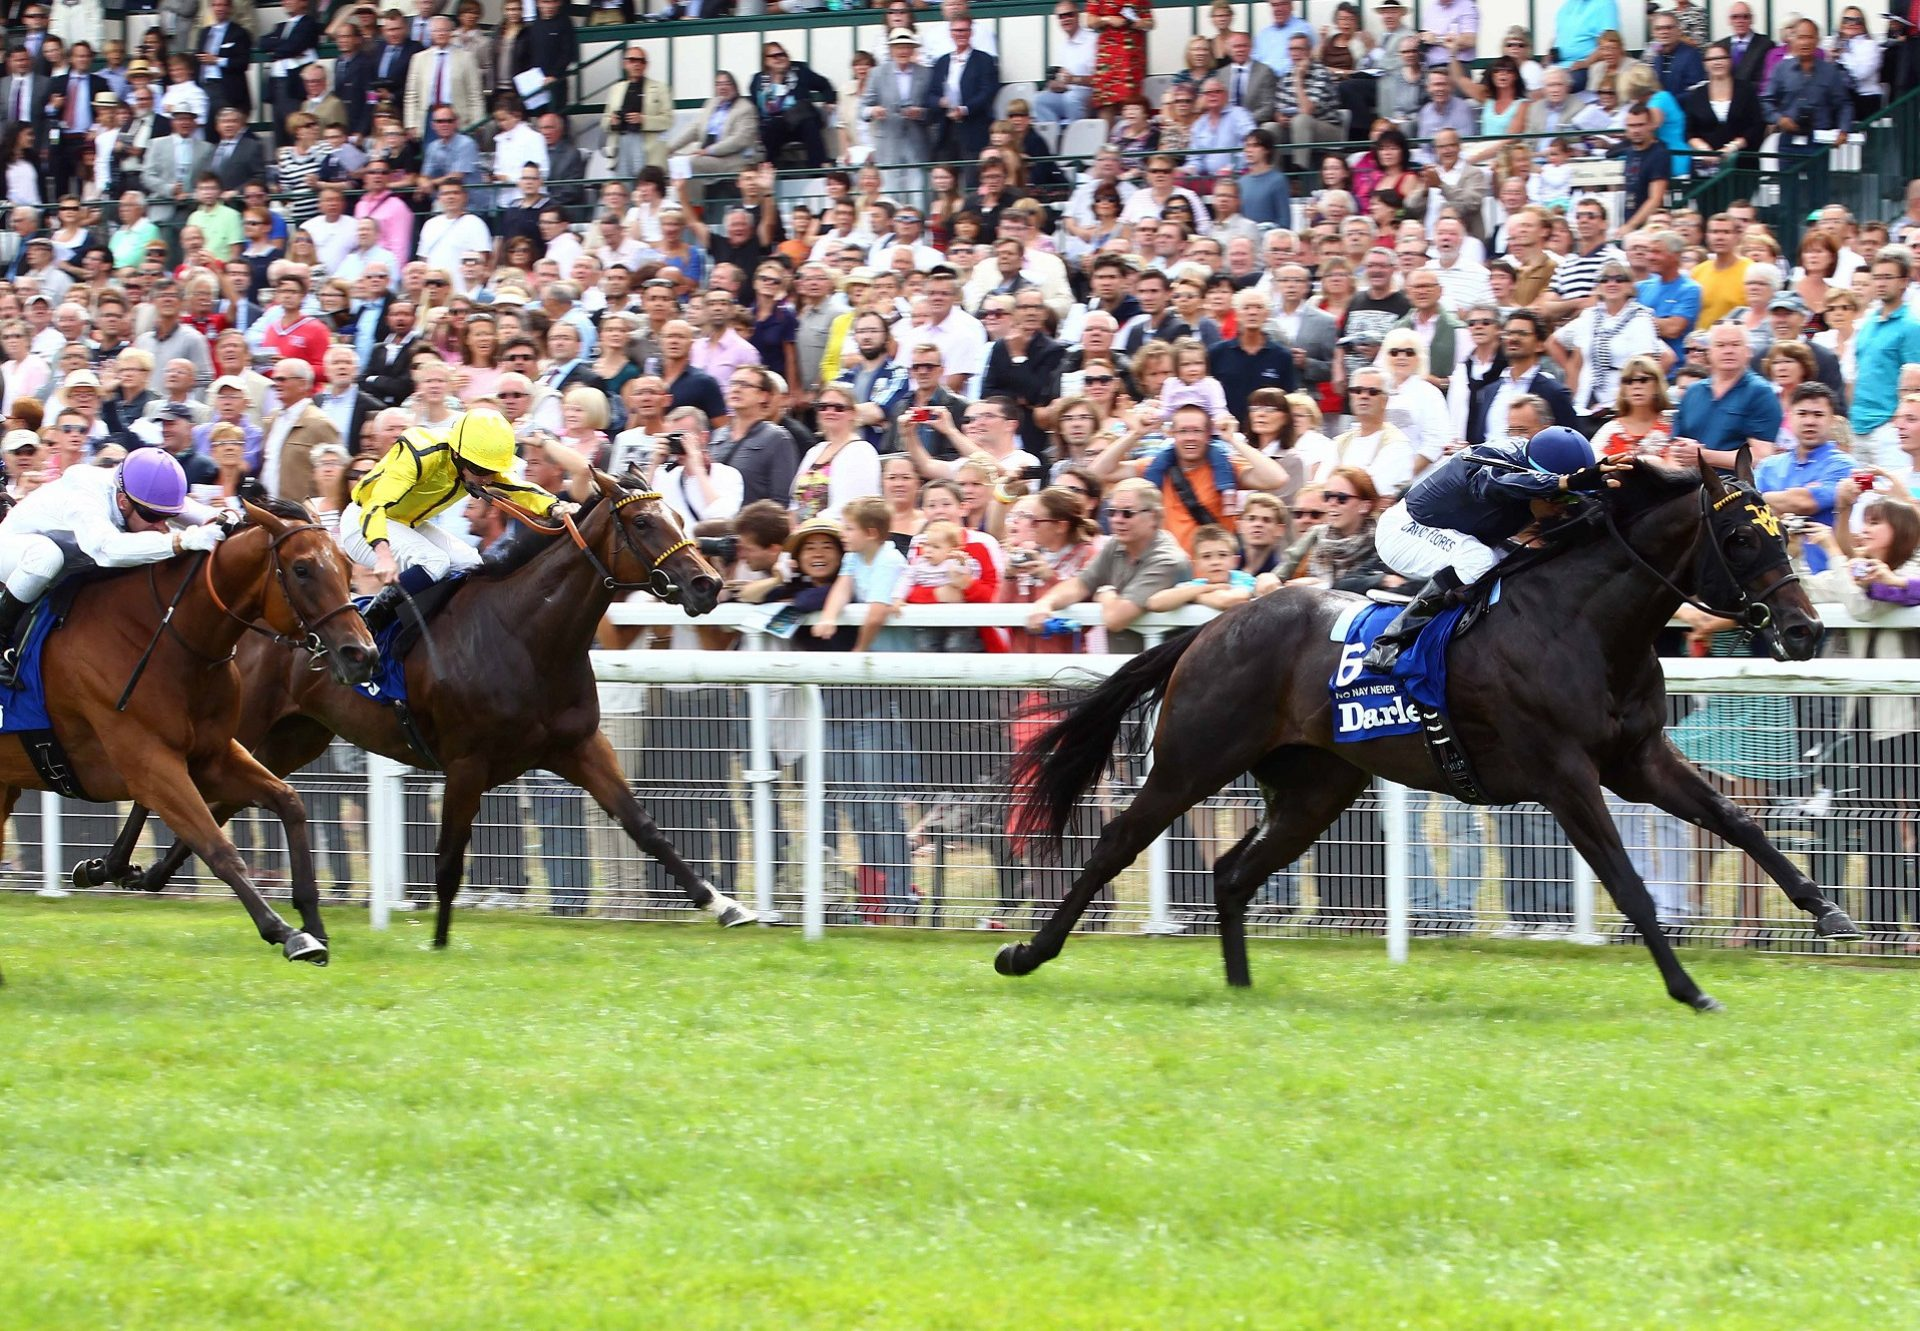 No Nay Never winning the G1 Prix Morny at Deauville